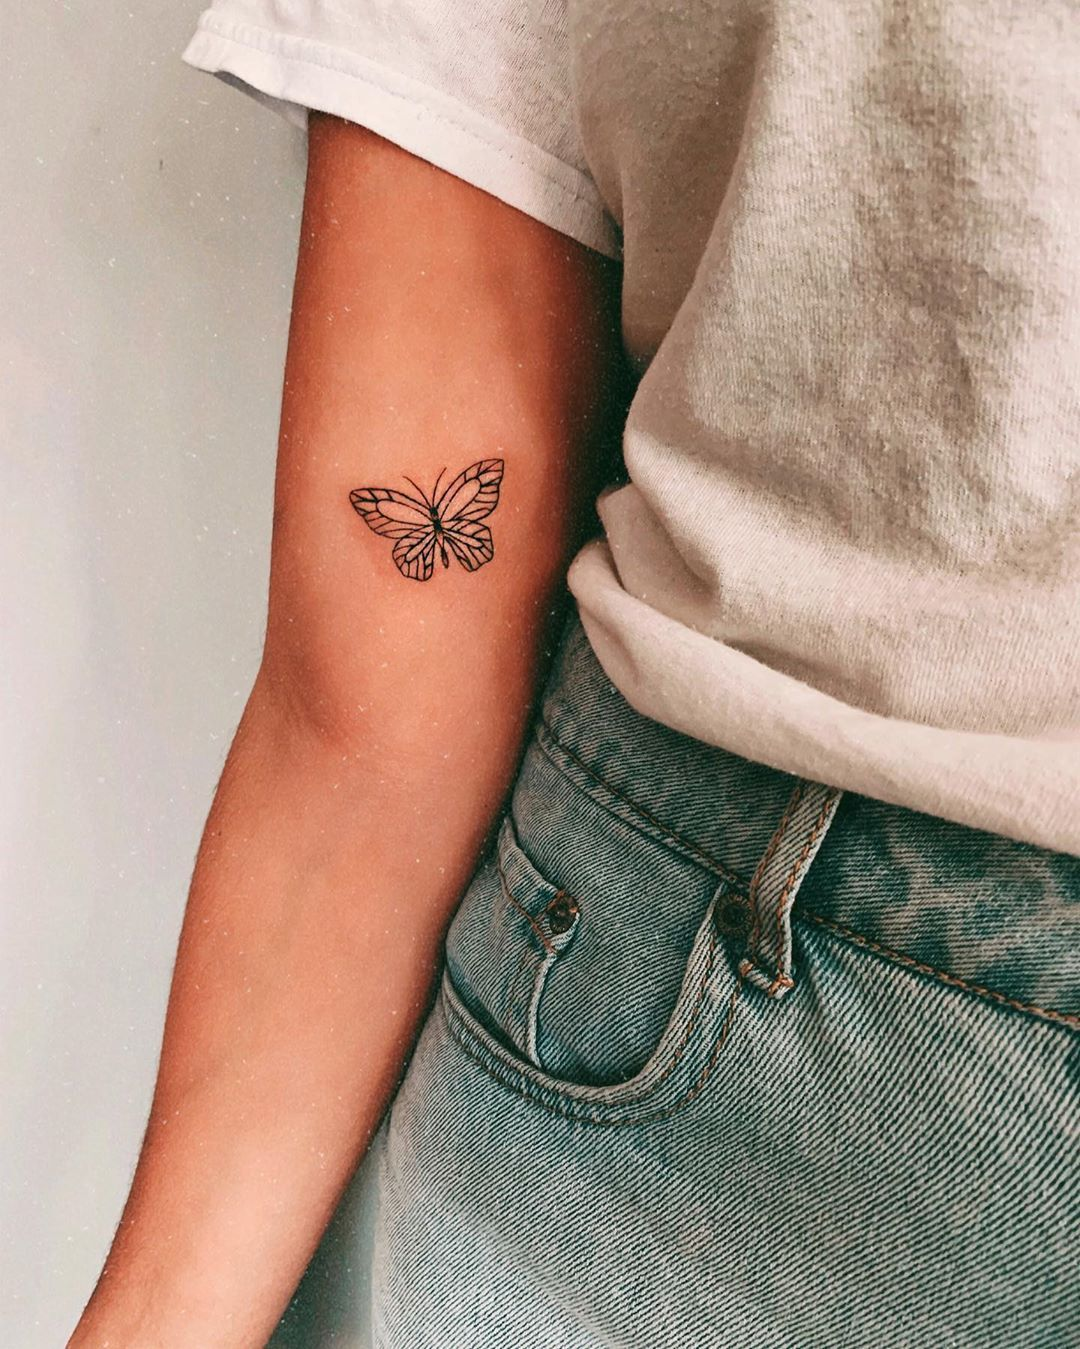 Pin by Kayla Cookson on Tattoo in 2020 | Dainty tattoos, Pretty tattoos